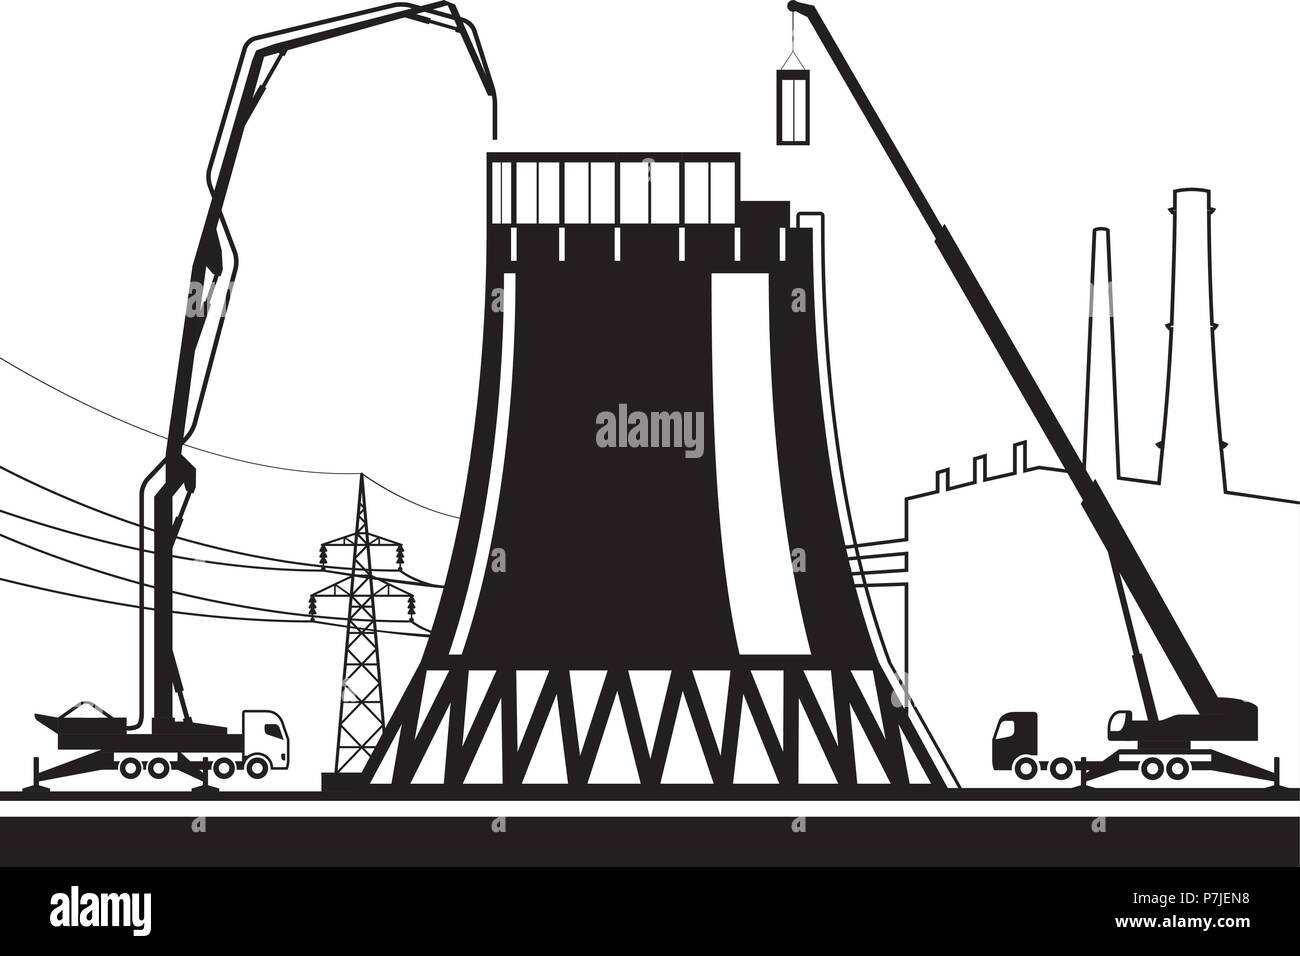 Construction of cooling tower in power plant - vector illustration - Stock Vector